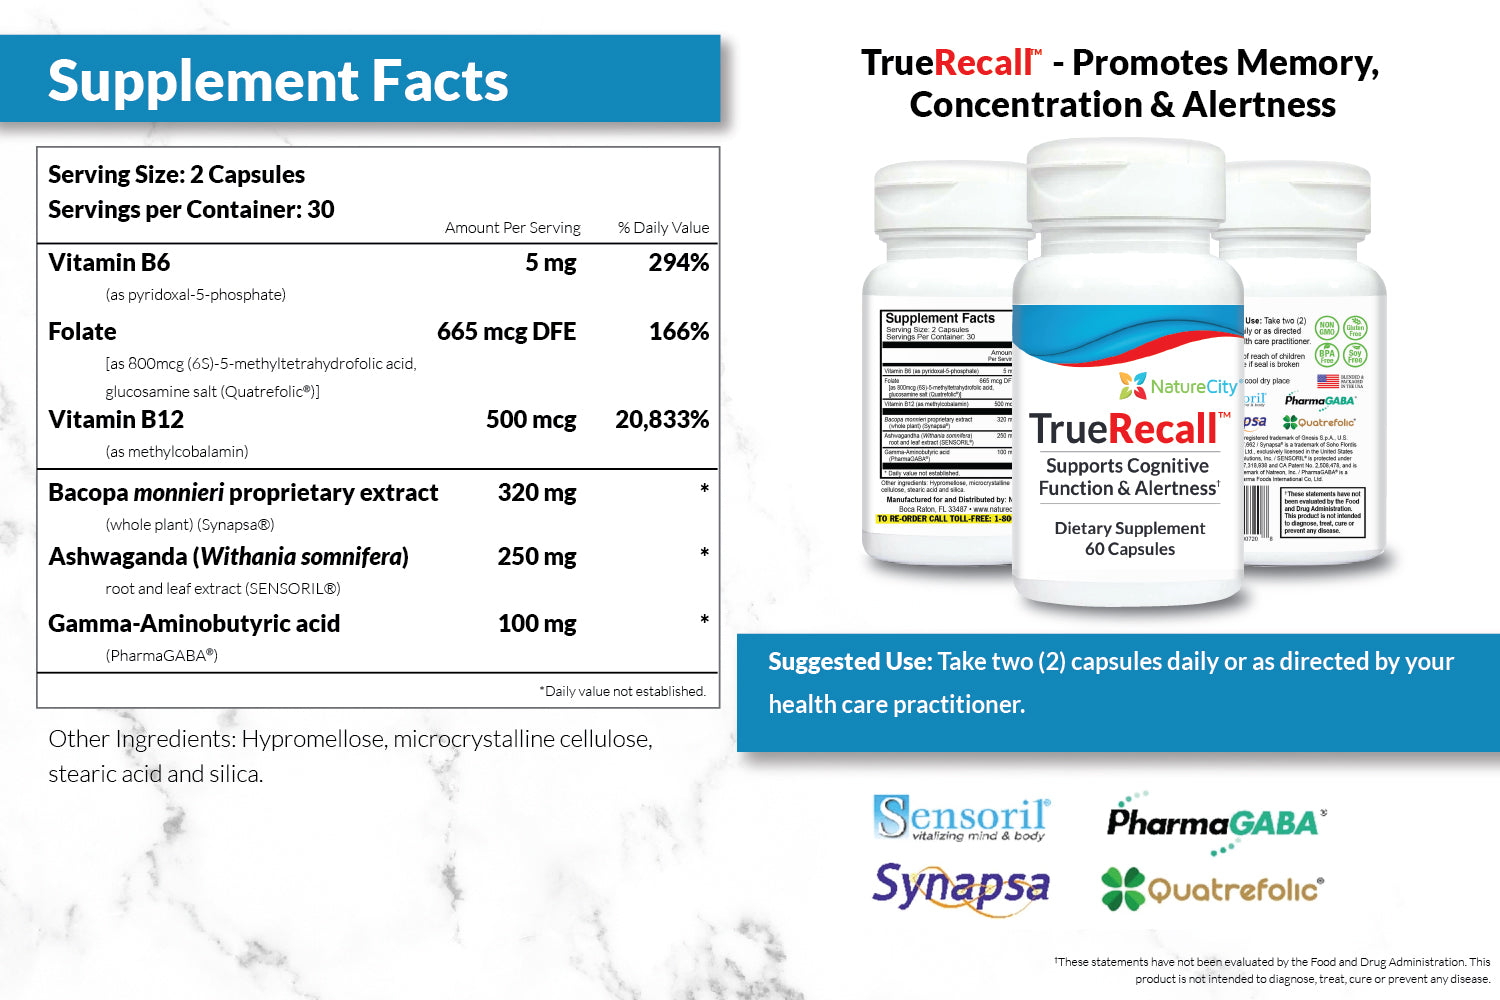 TrueRecall Supplement Facts and Directions